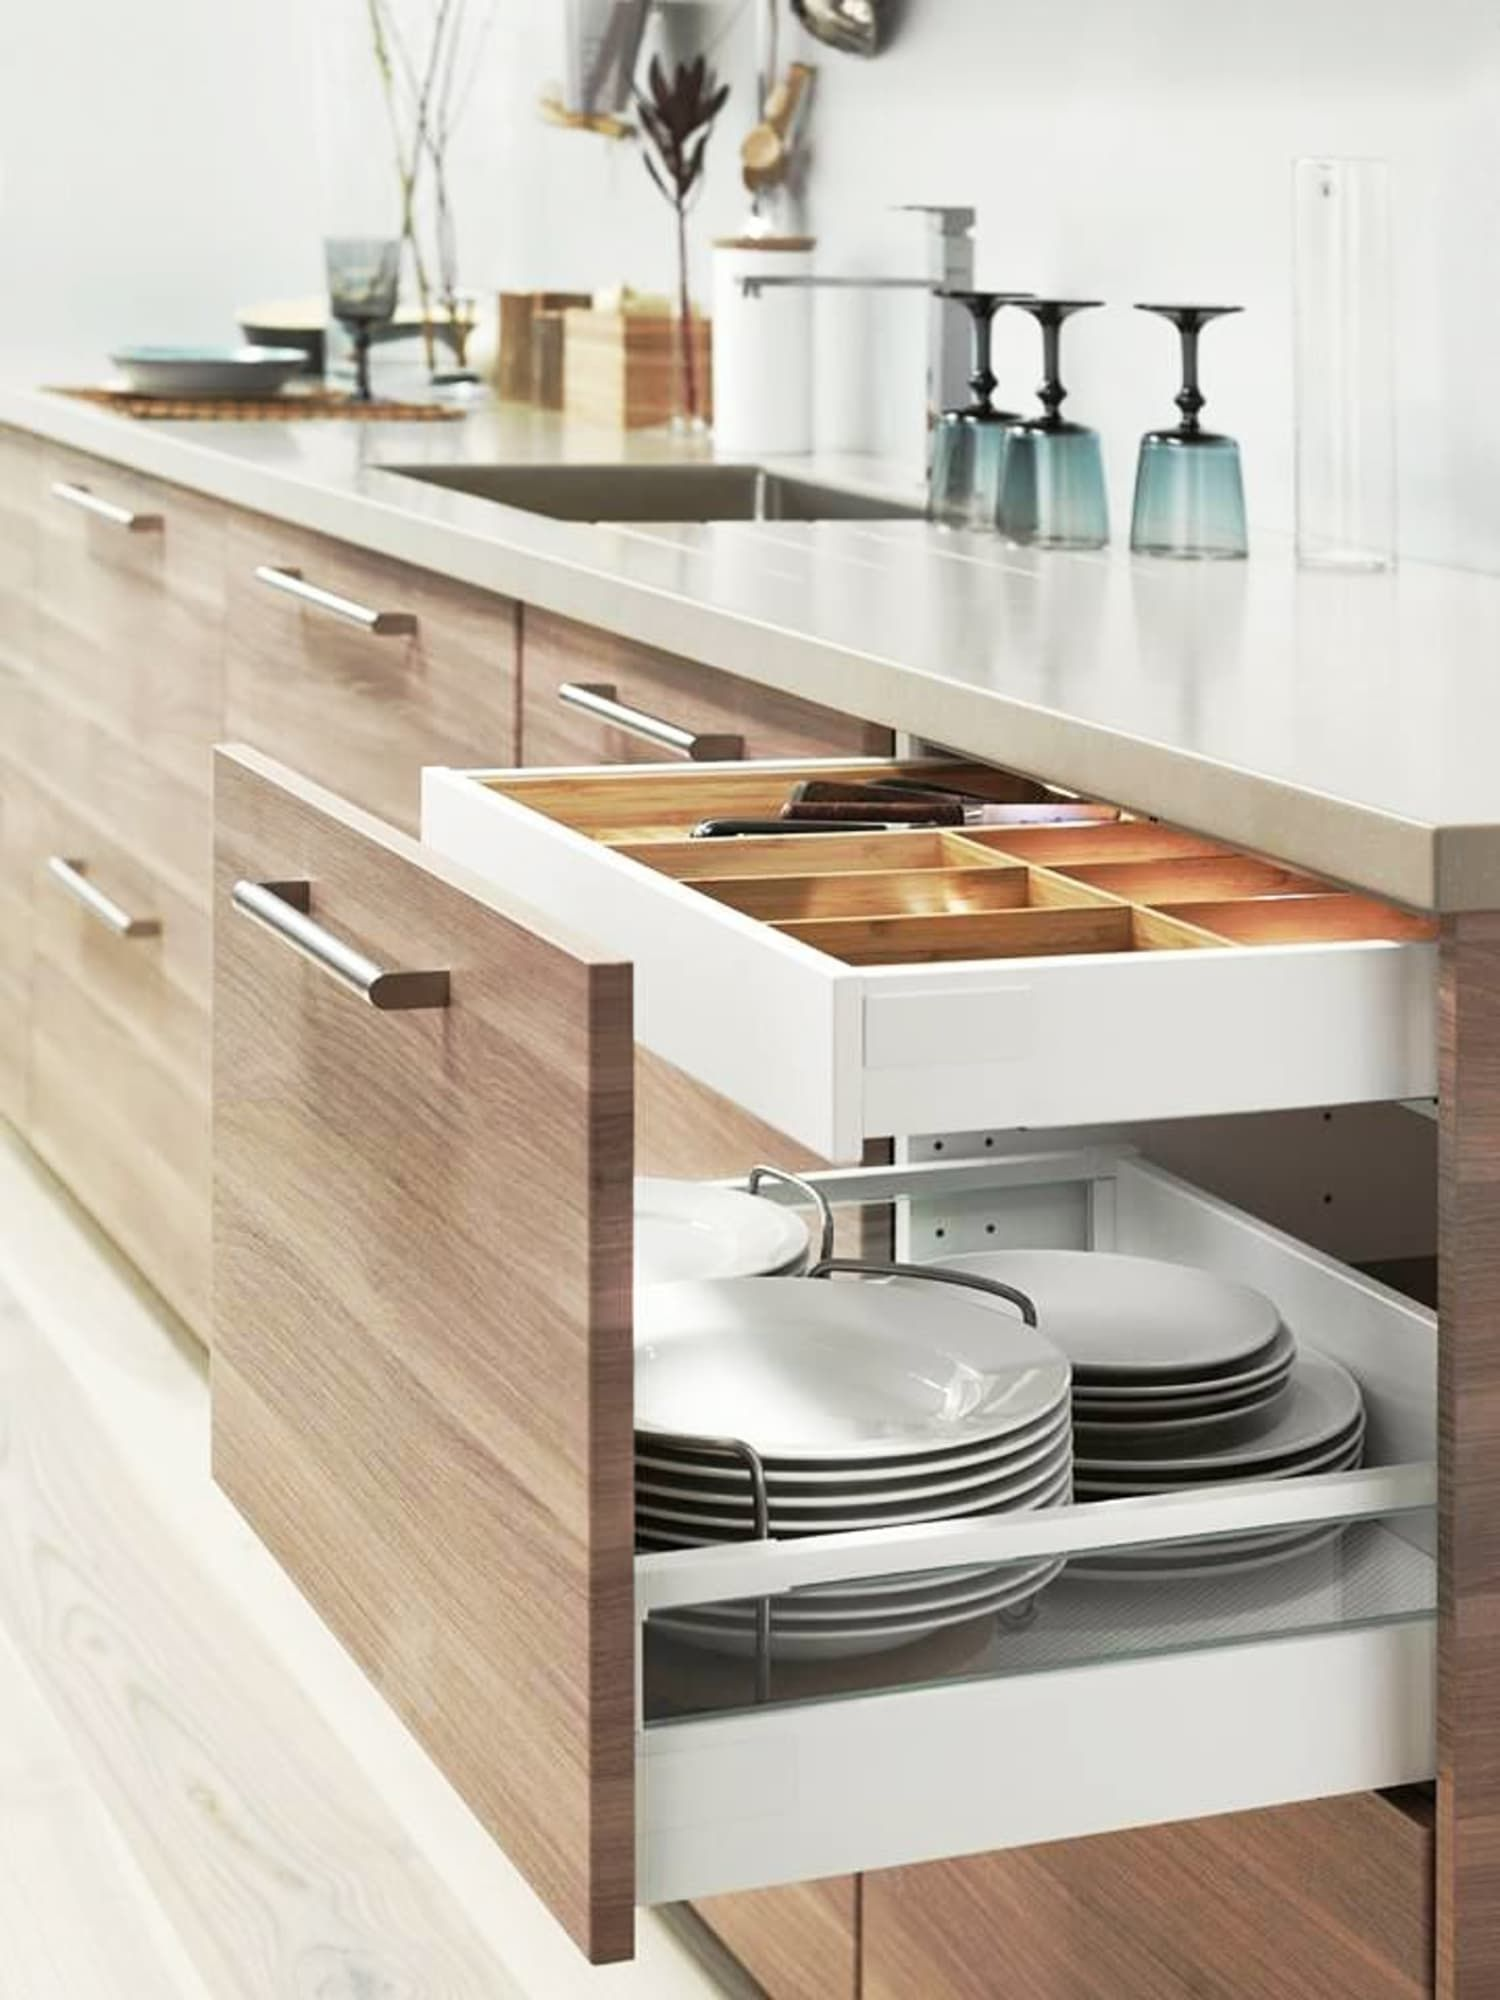 Extra Shelves For Ikea Kitchen Cabinets 2021 In 2020 Ikea Kitchen Design New Kitchen Cabinets Modern Kitchen Cabinets